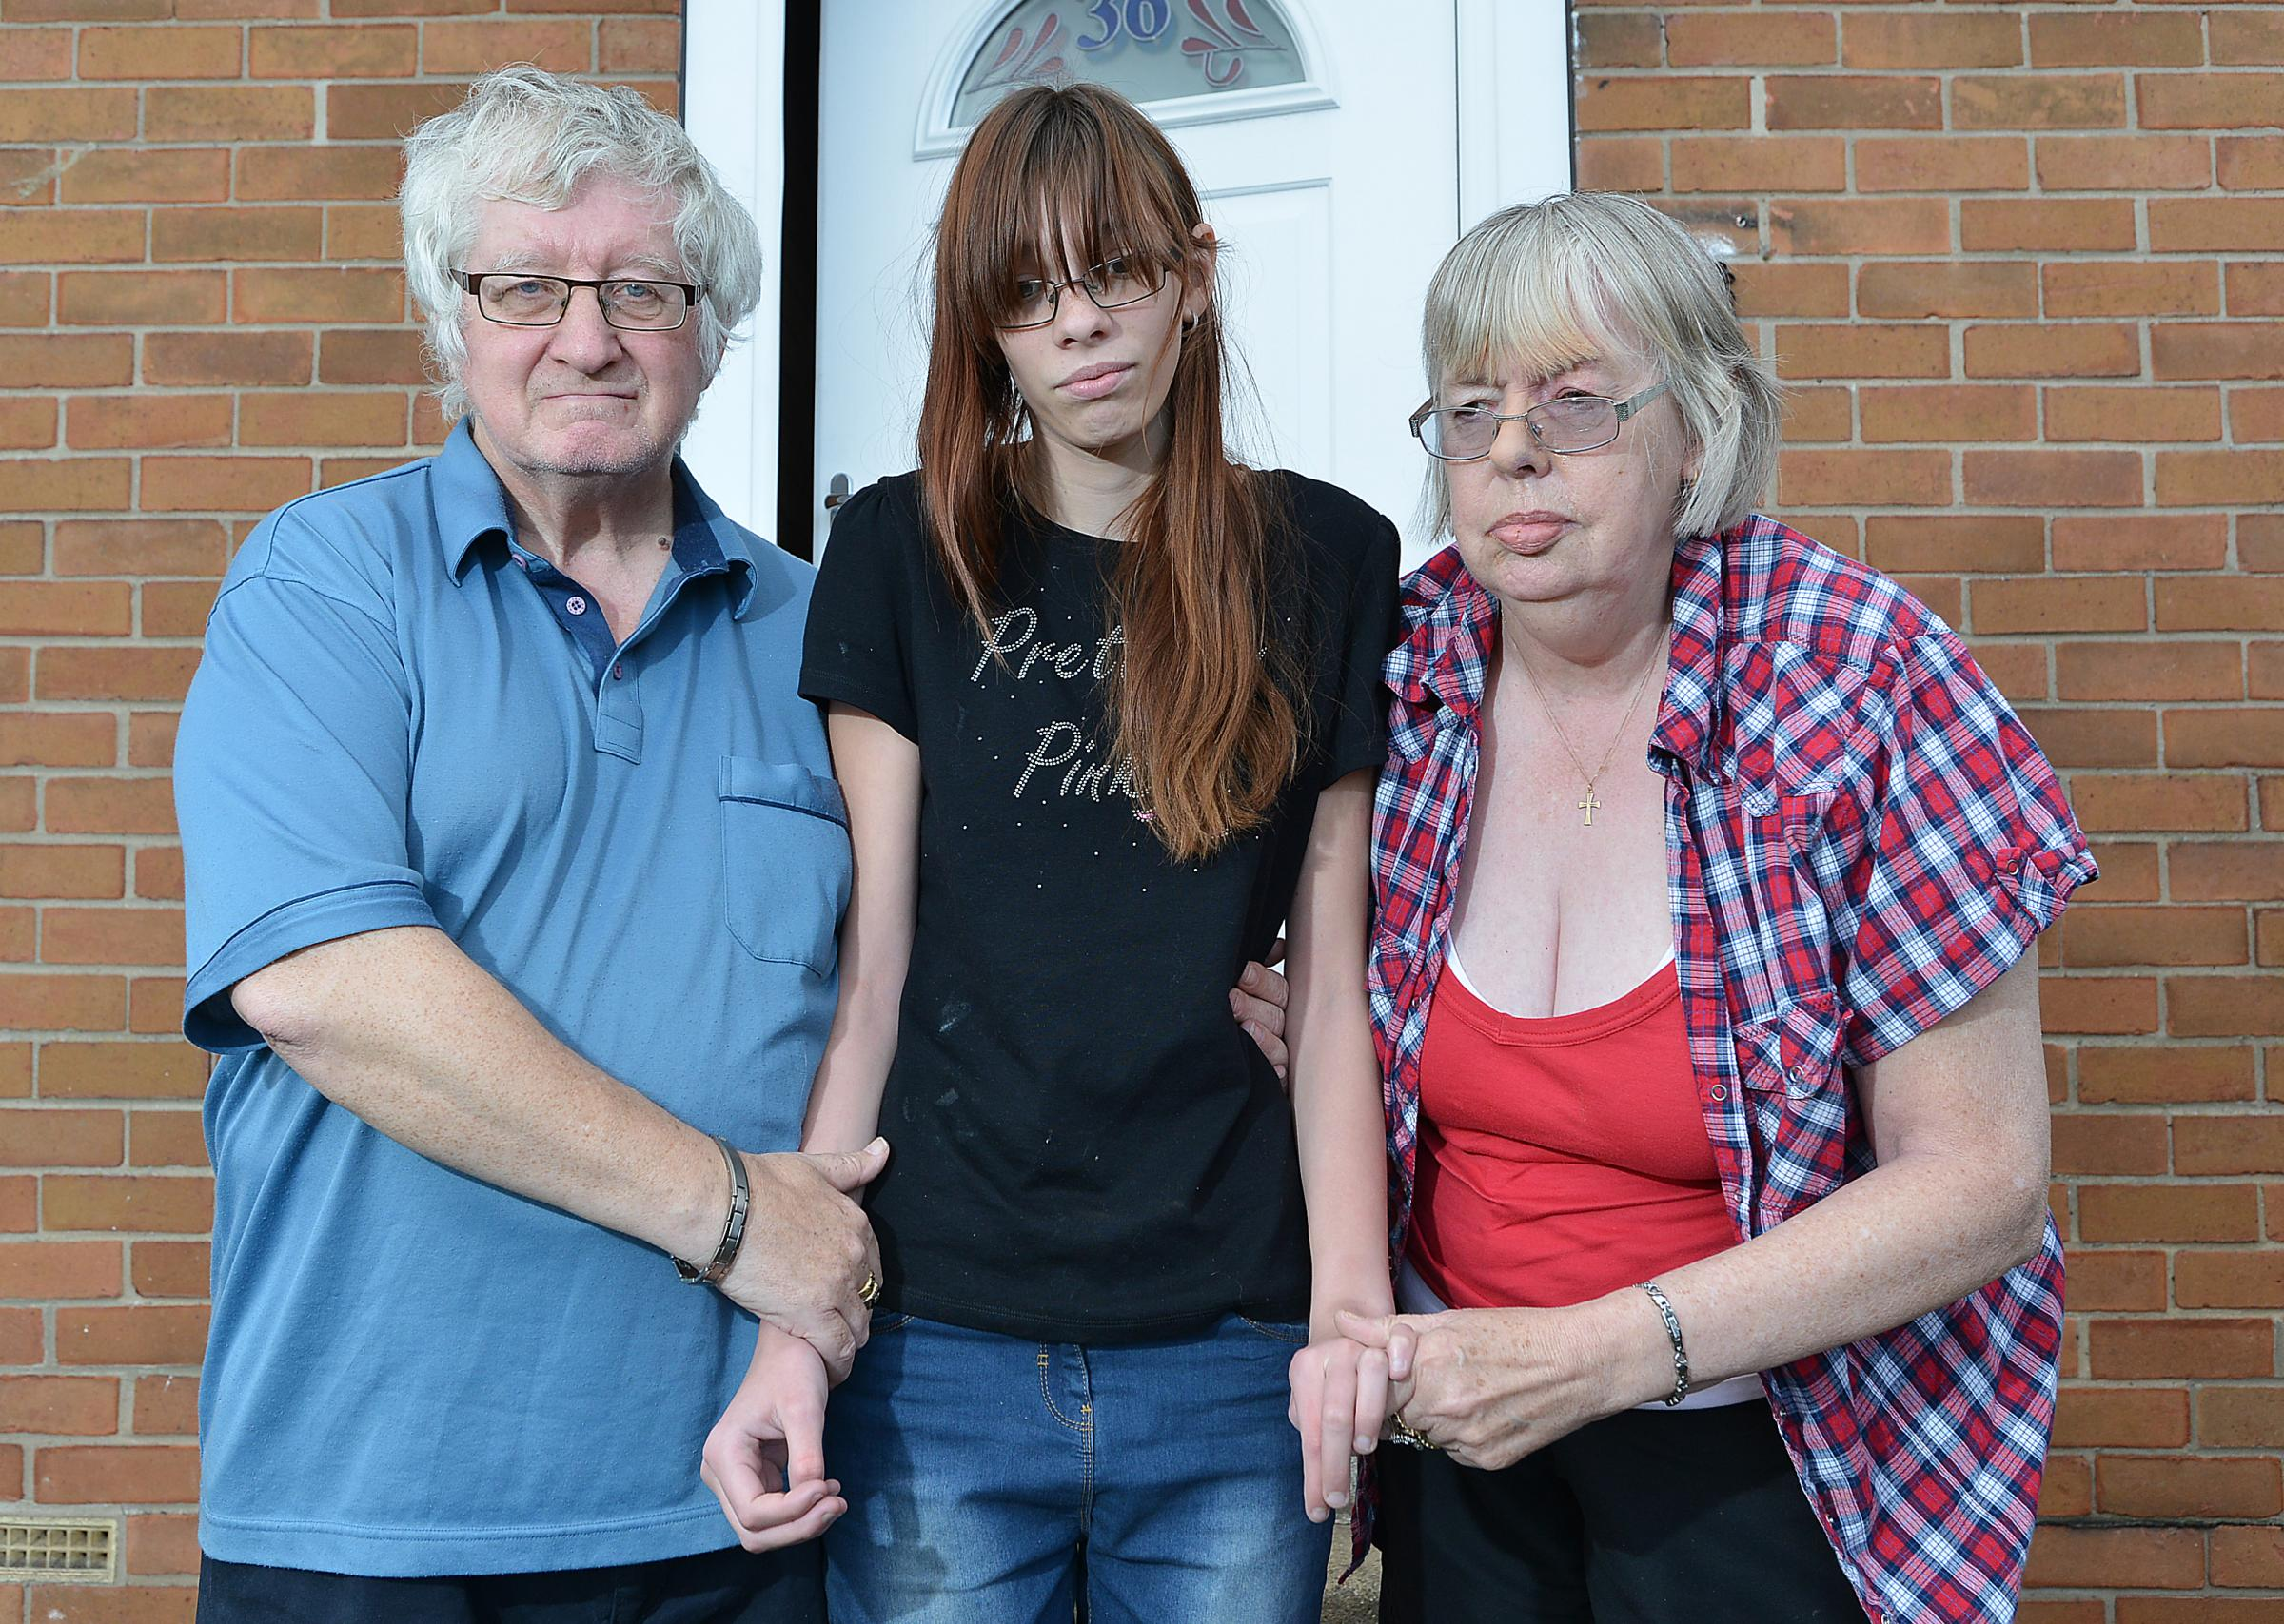 Grandparents John and Clare Pollard with their grandaughter Sophie, 18, who suffers from epilepsy